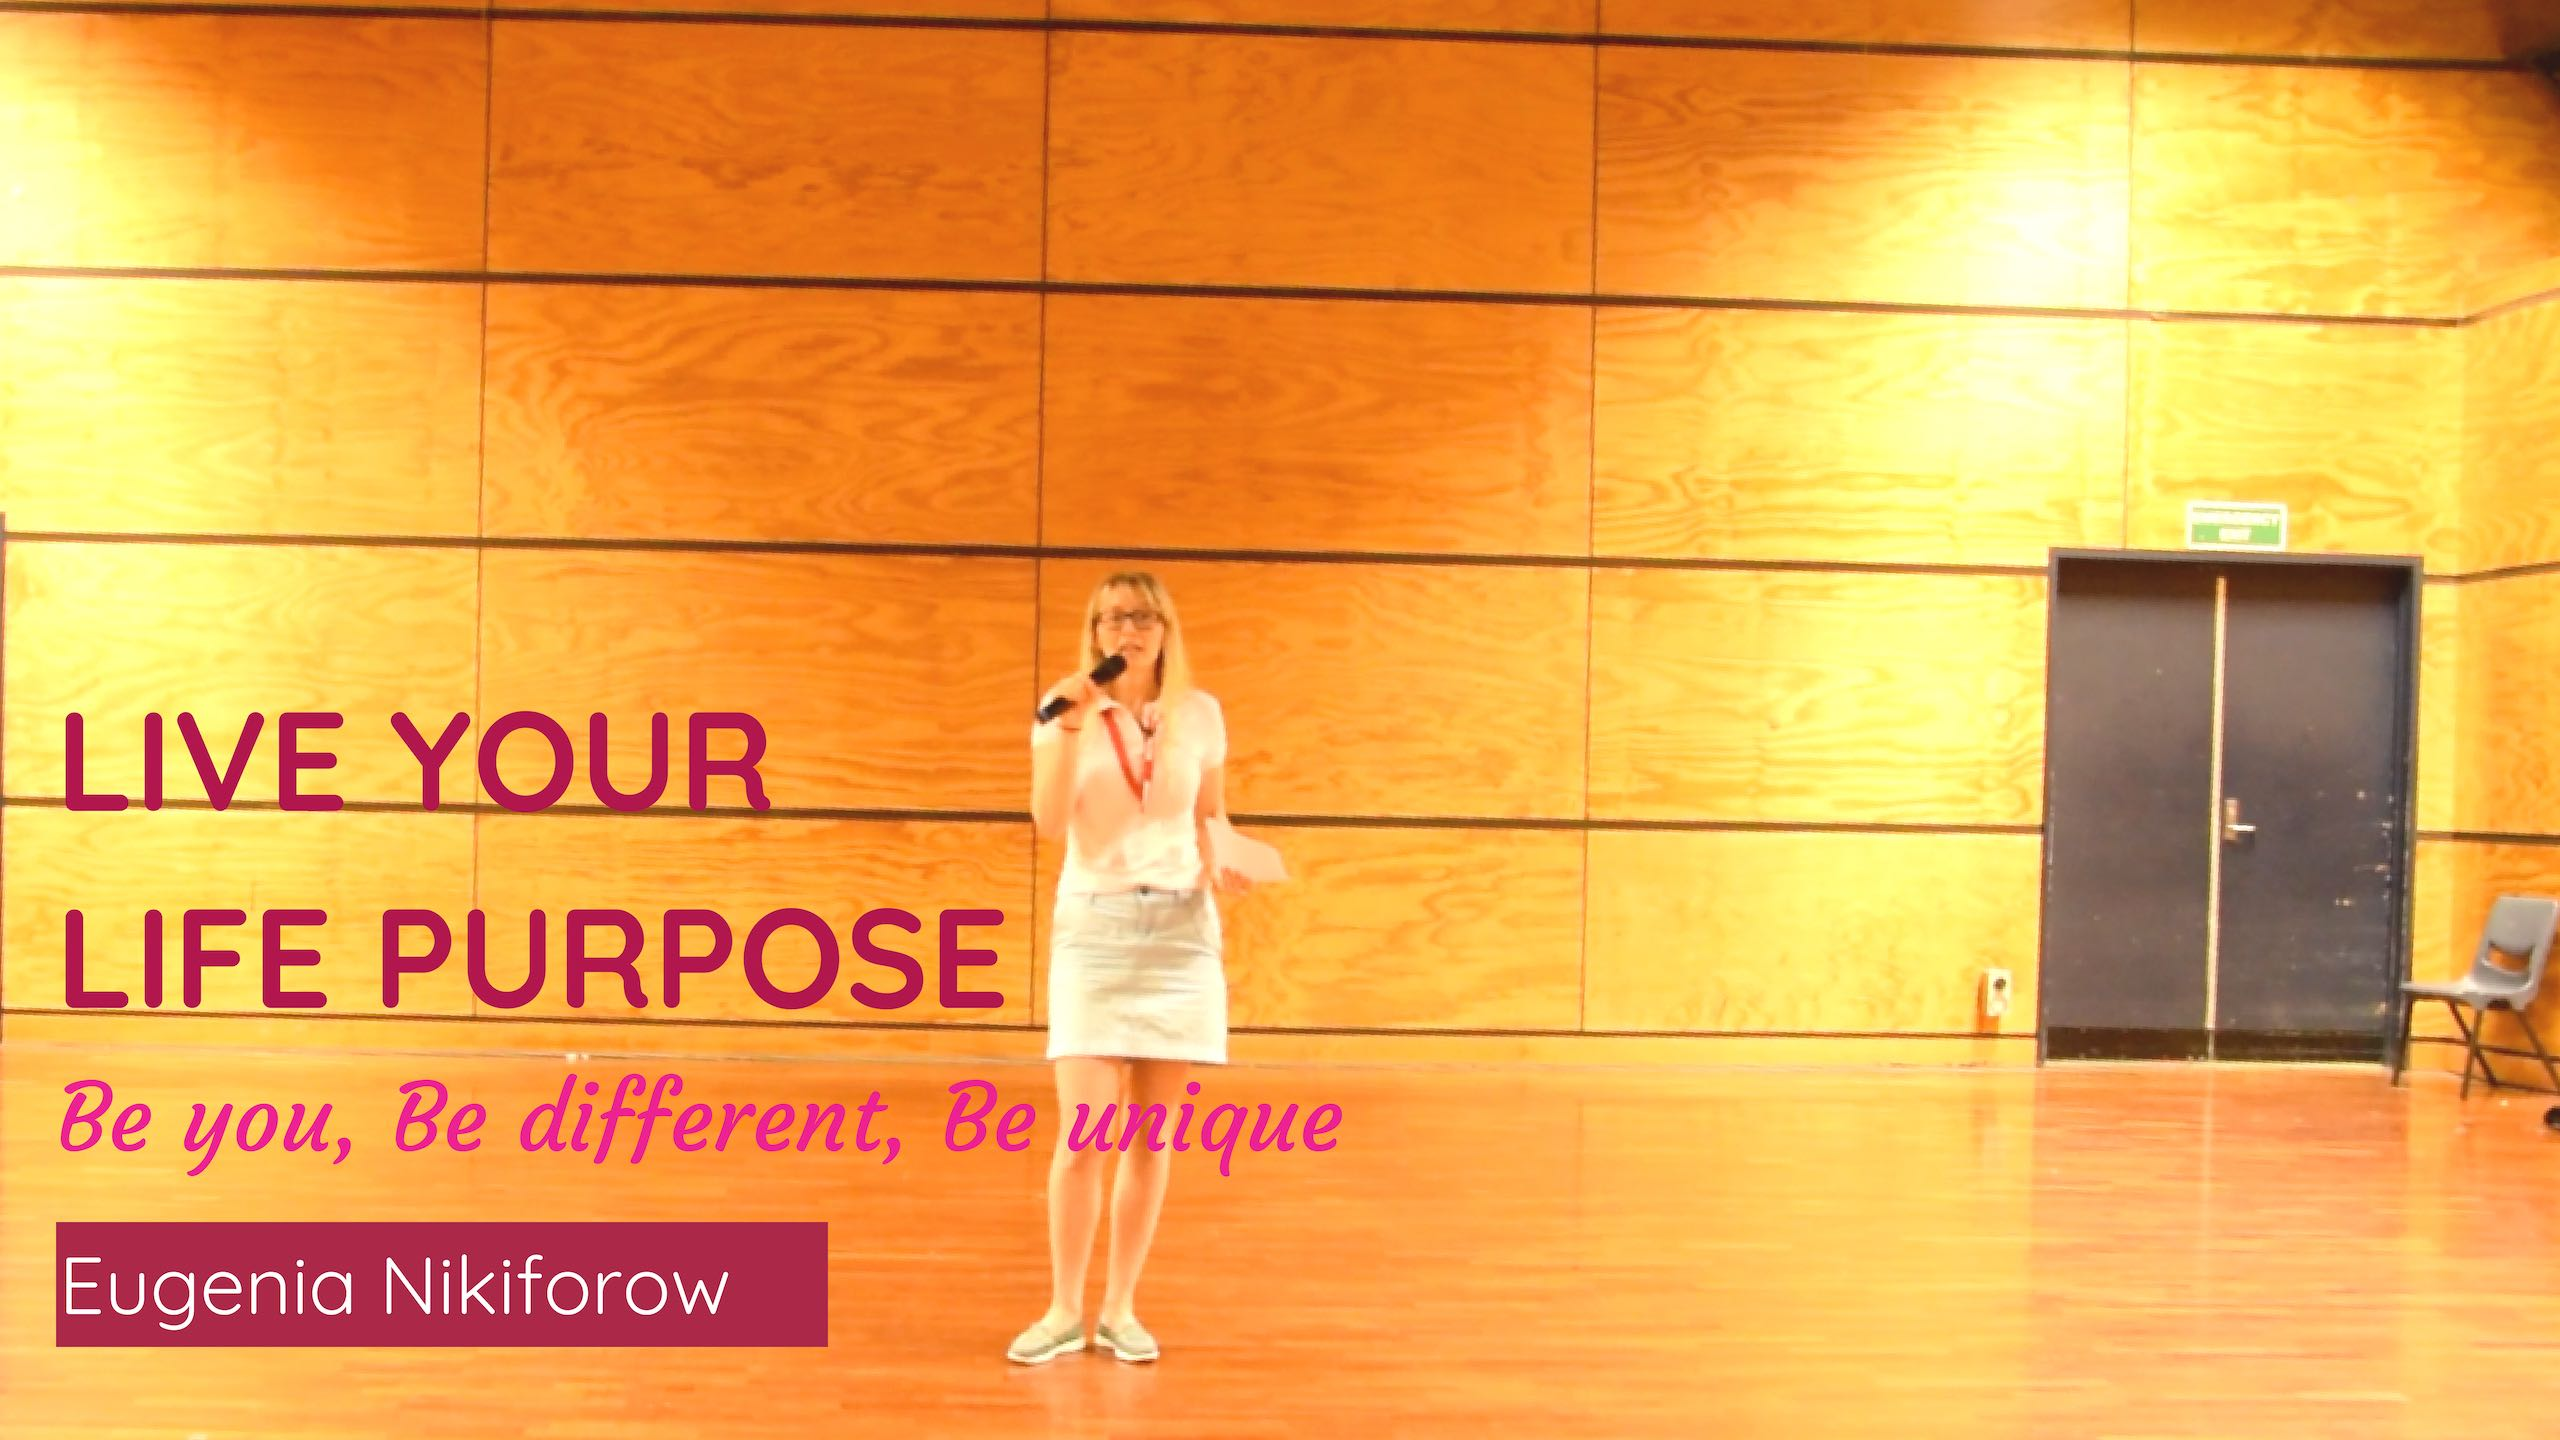 Eugenia Nikiforow speaking about Live purpose